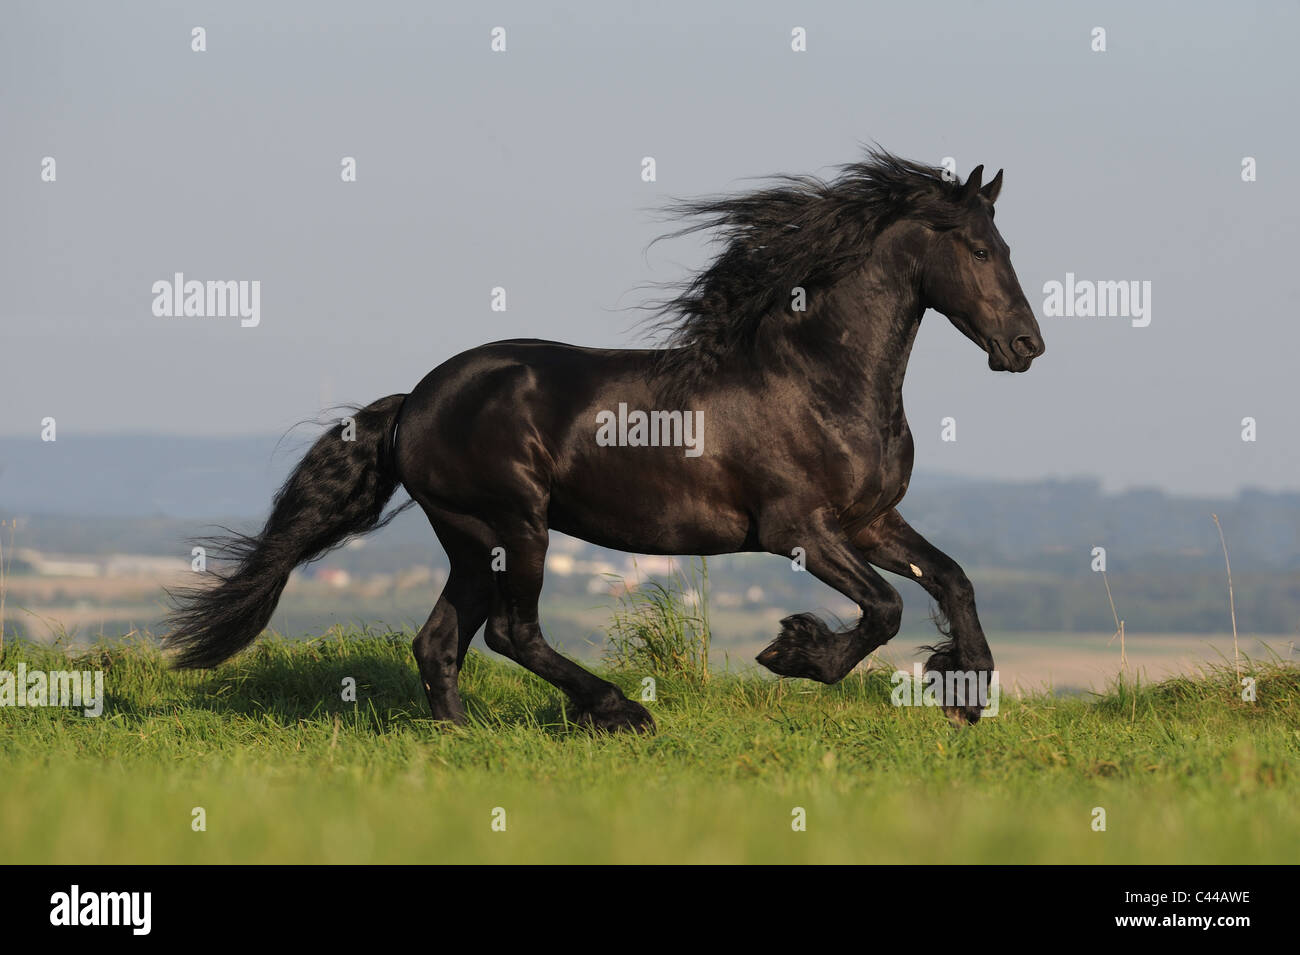 Friesian Horse (Equus ferus caballus). Stallion in a gallop on a meadow. - Stock Image